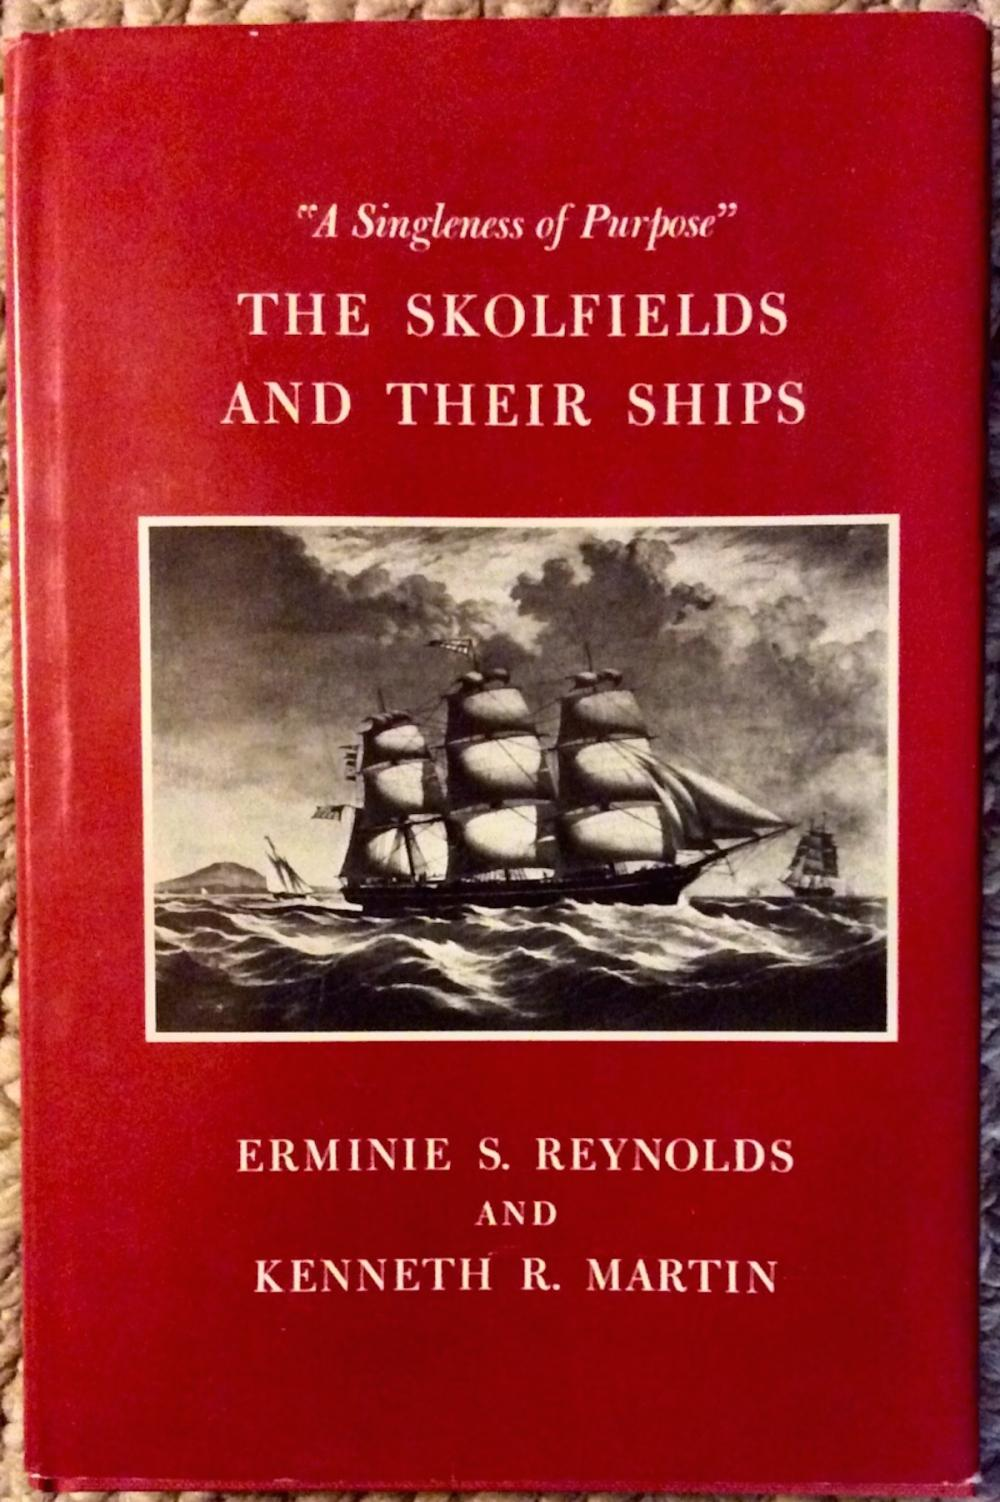 """The Skolfields & Their Ships"" by Ermine Reynolds & Ken Martin VINTAGE 1987 Hardcover Nautical History Of The Skolfield Family Of Ship Owners 1st Edition 1st Printing In DJ"